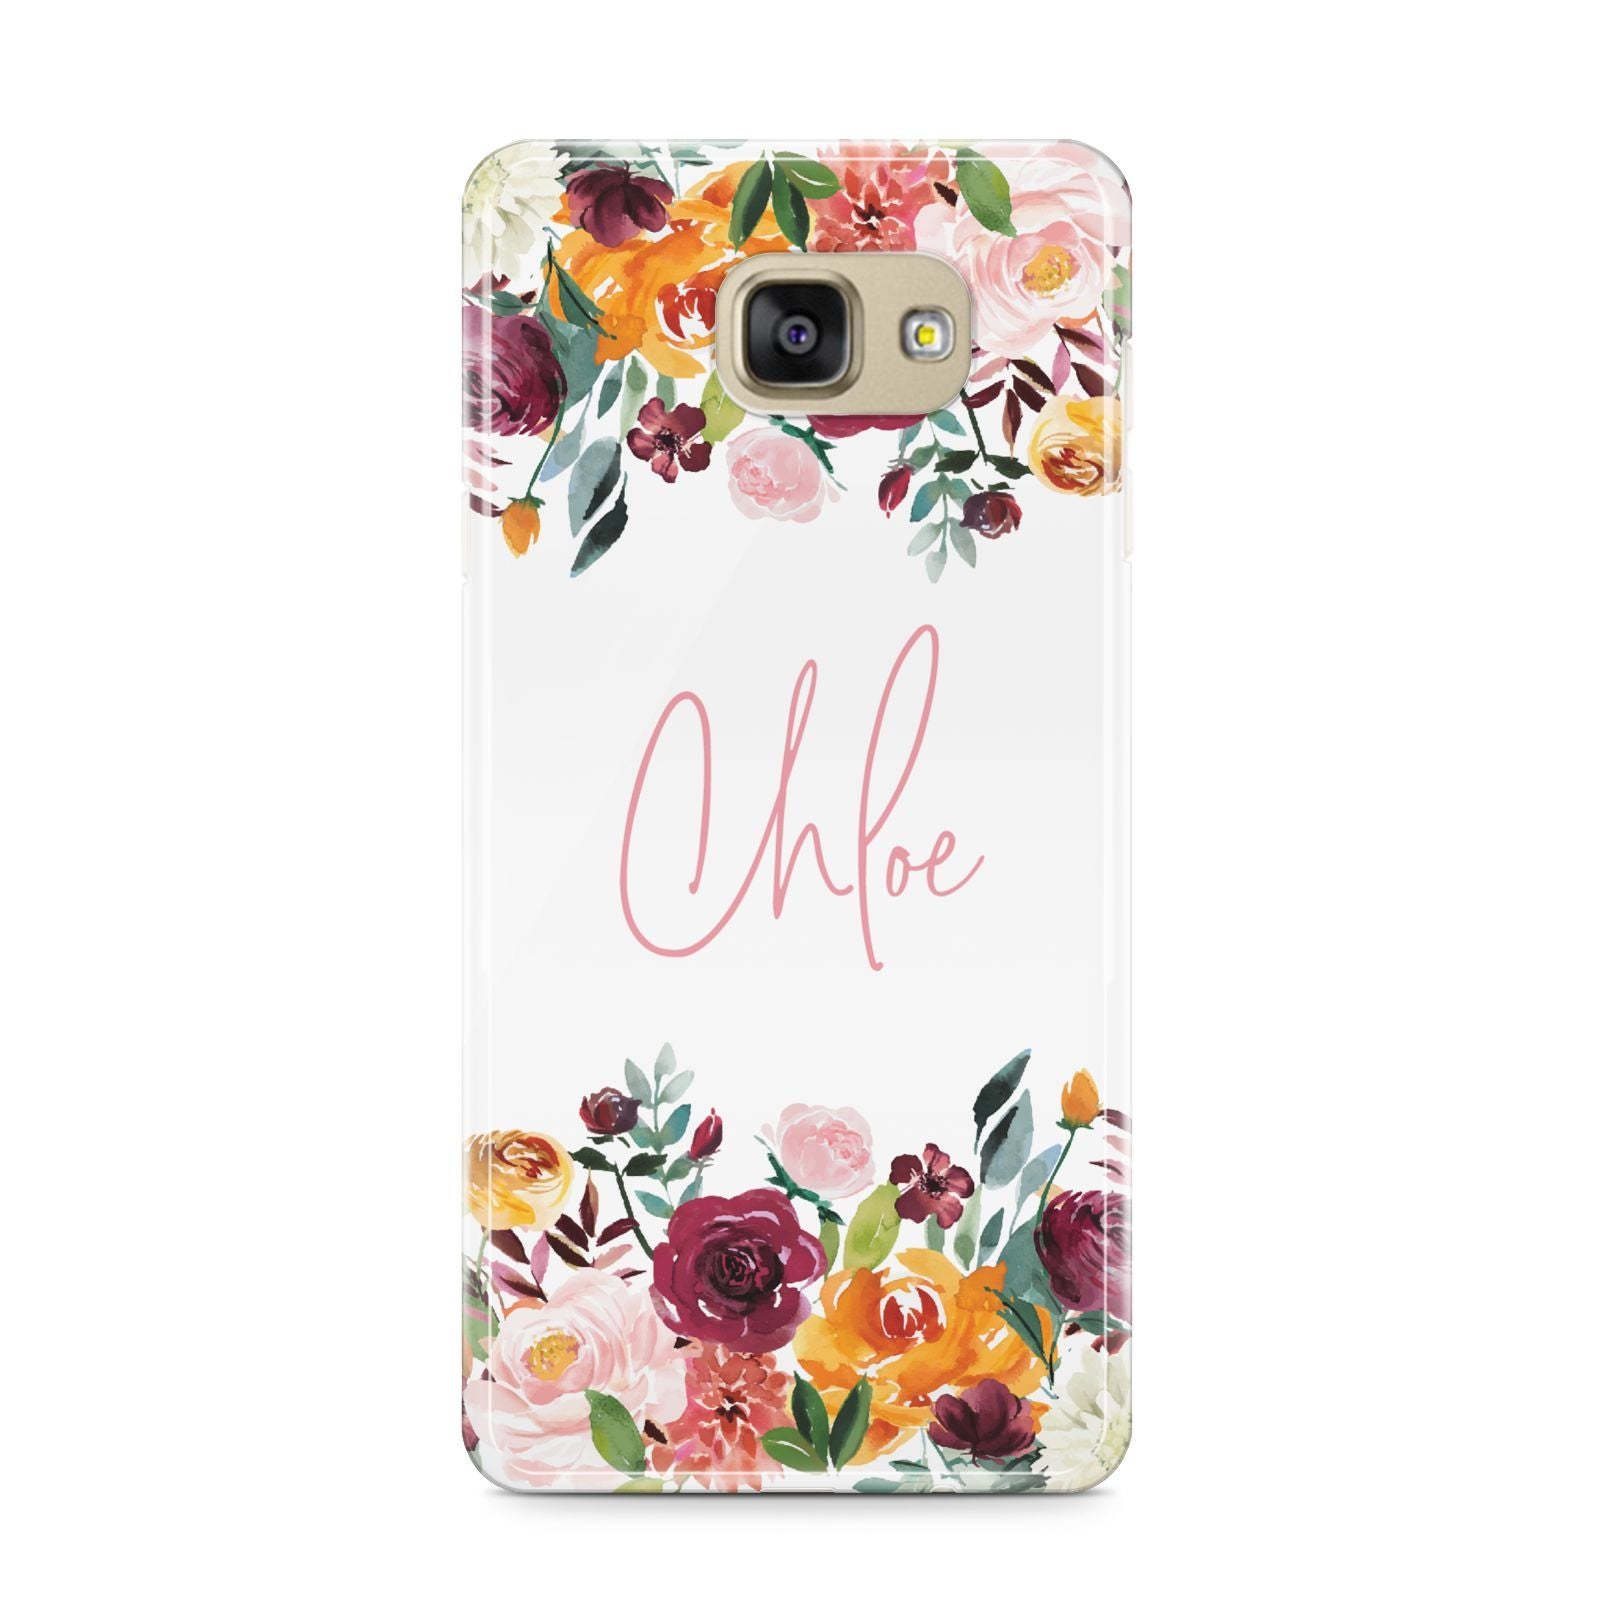 Personalised Name Transparent Flowers Samsung Galaxy A9 2016 Case on gold phone